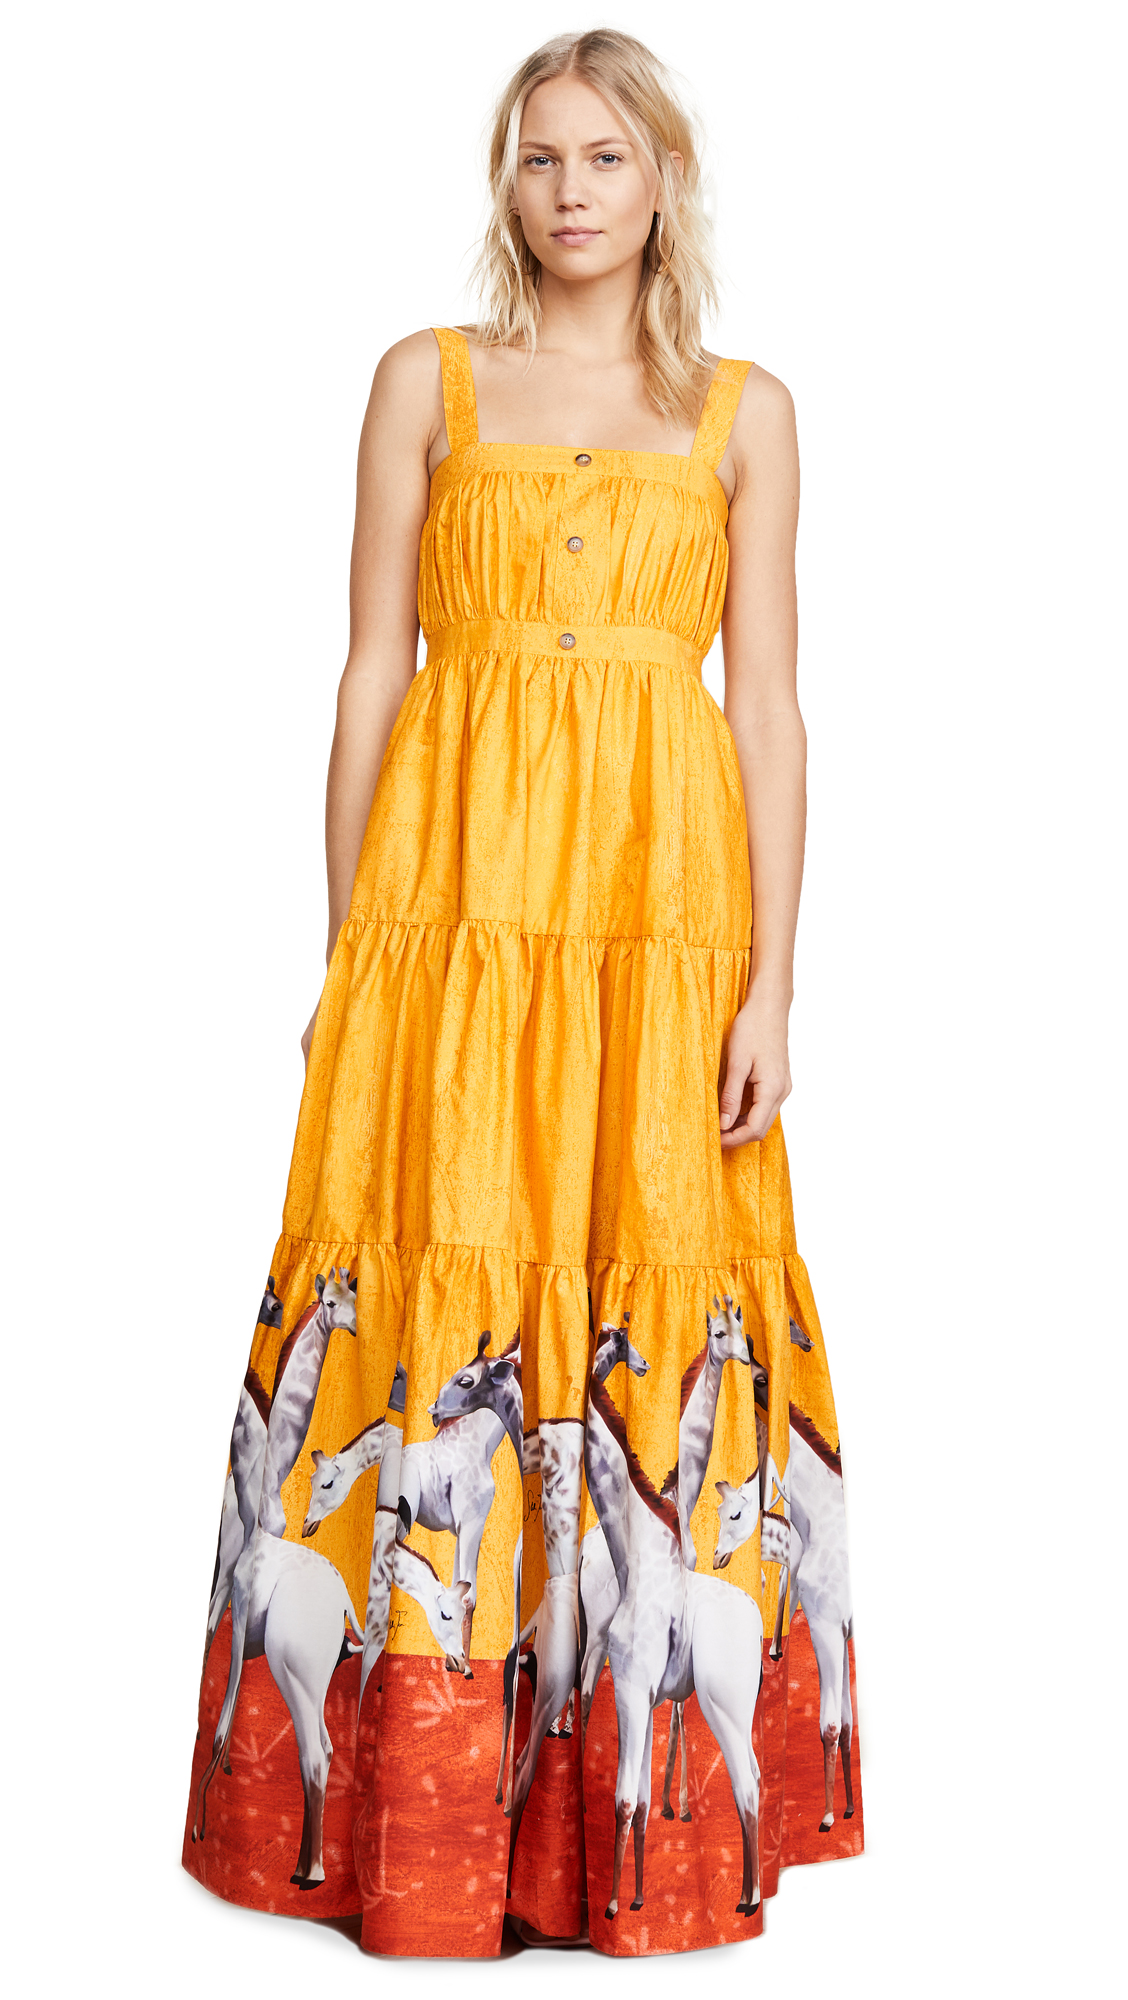 Stella Jean Giraffe Maxi Dress - Giraffe/Yellow